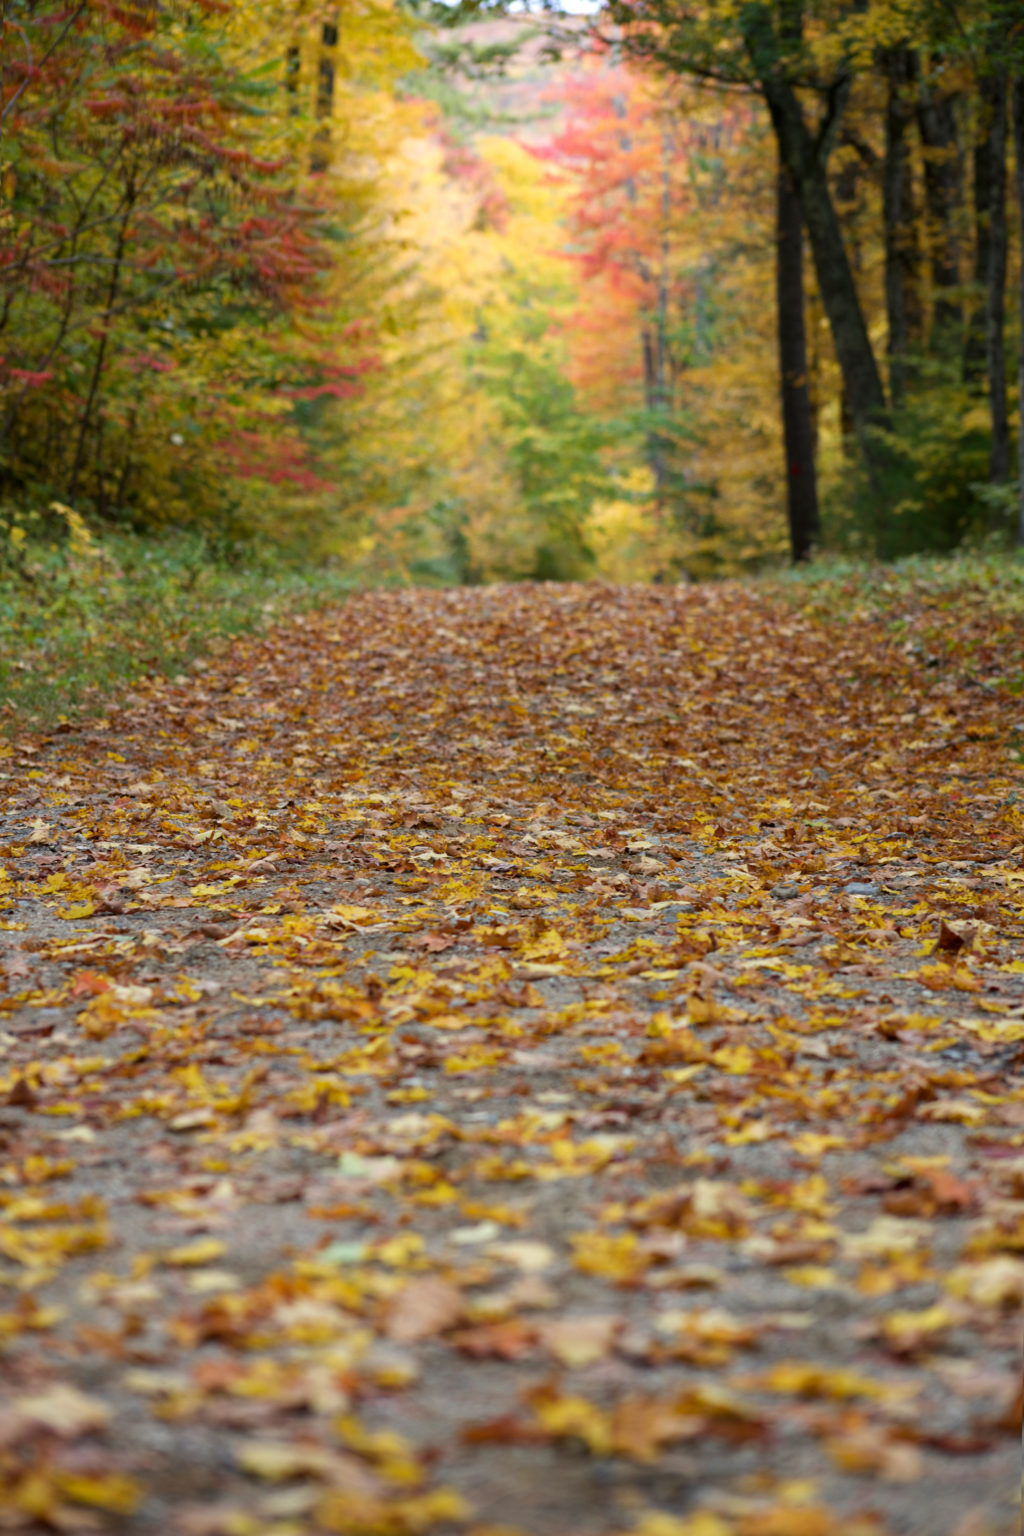 Fallen Leaves on Wide Path in the Woods